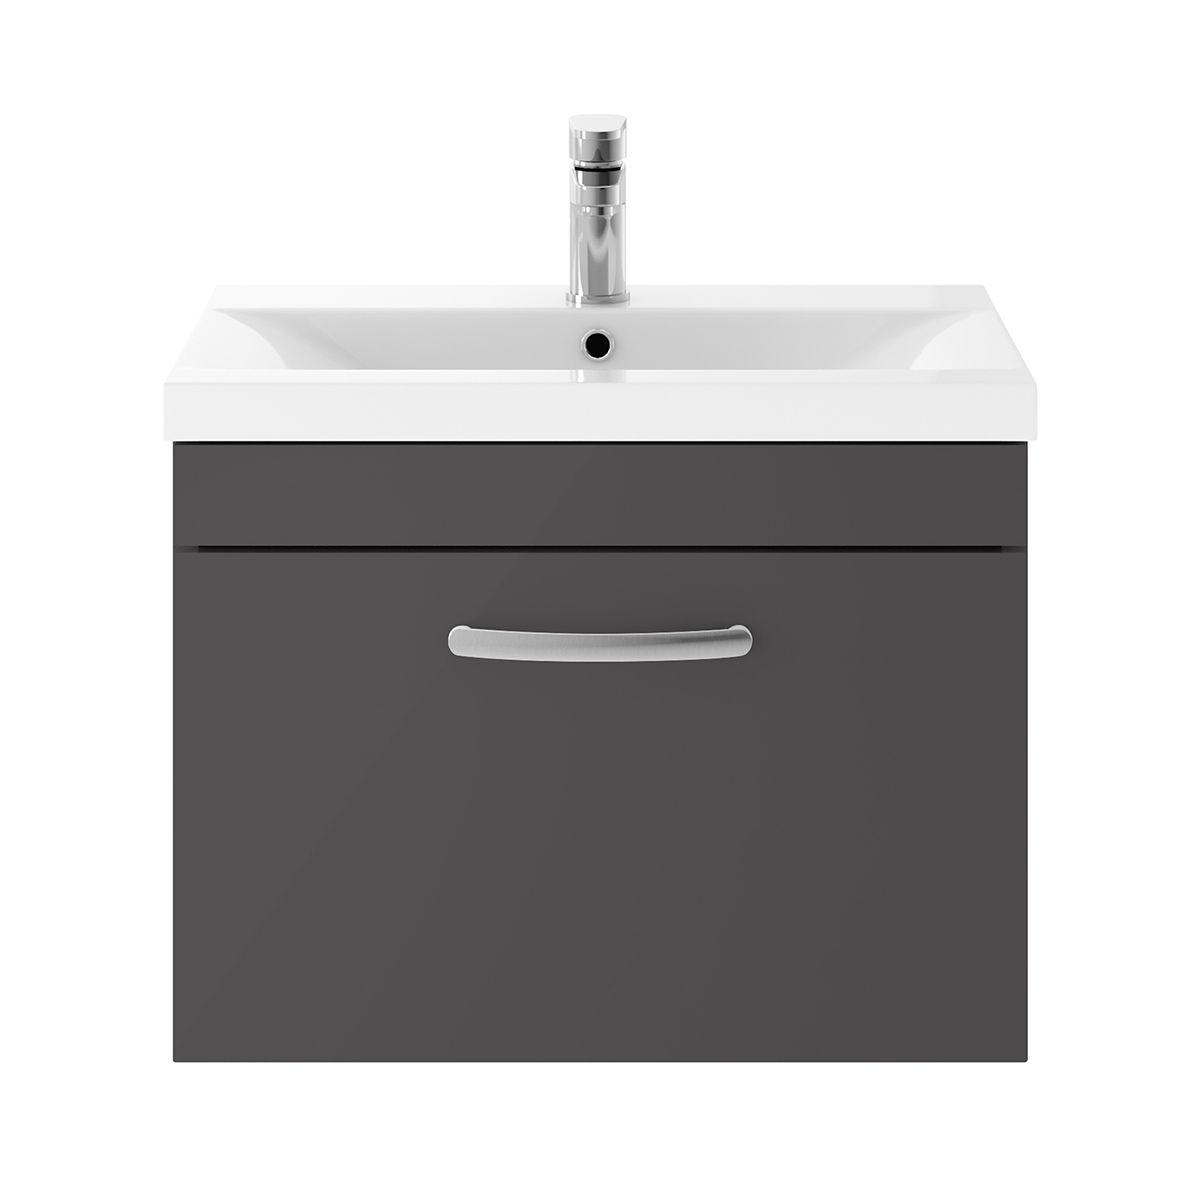 Nuie Athena Gloss Grey 1 Drawer Wall Hung Unit 600mm with Mid Edge Basin